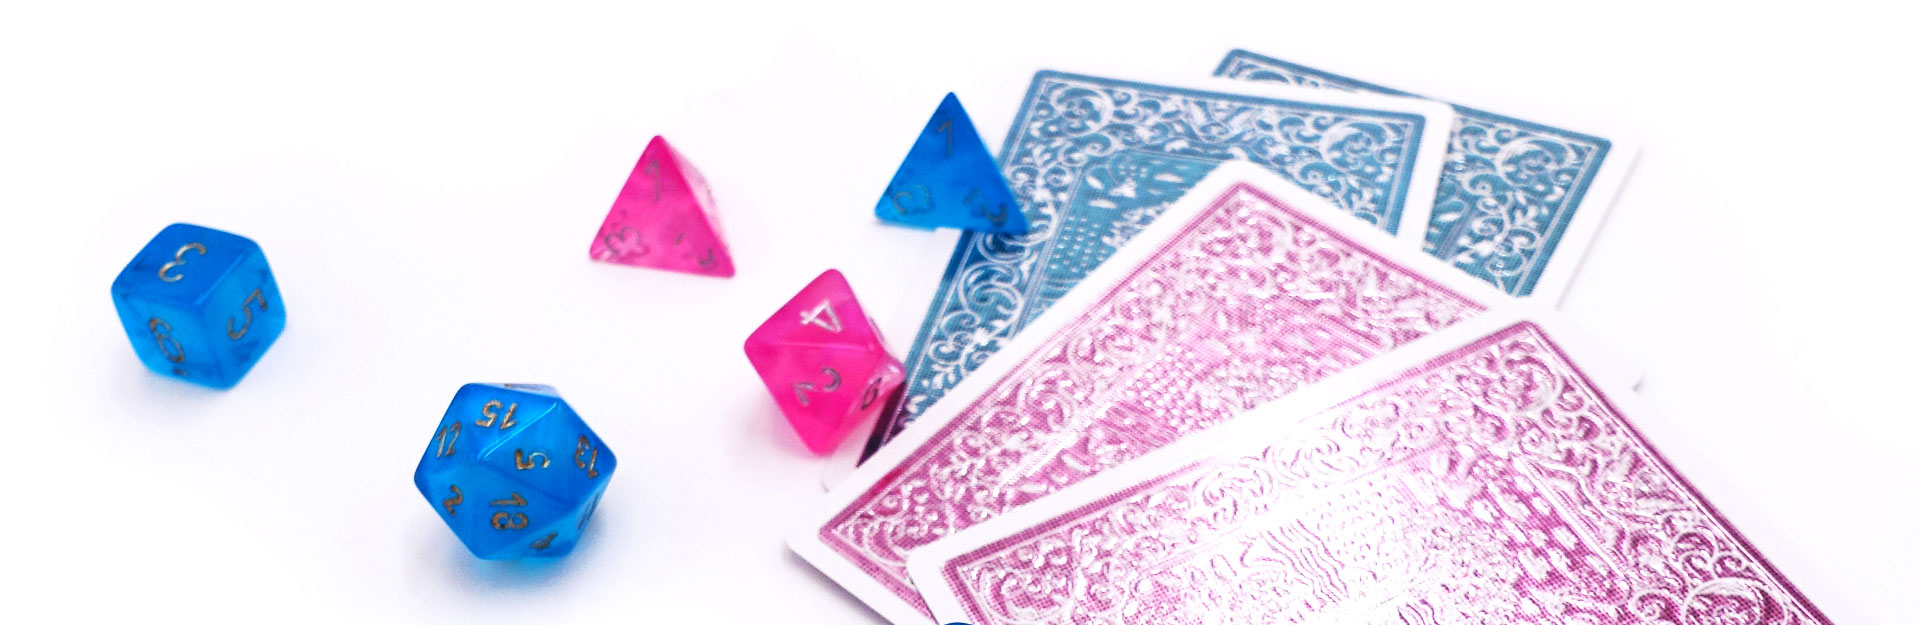 background dices and cards